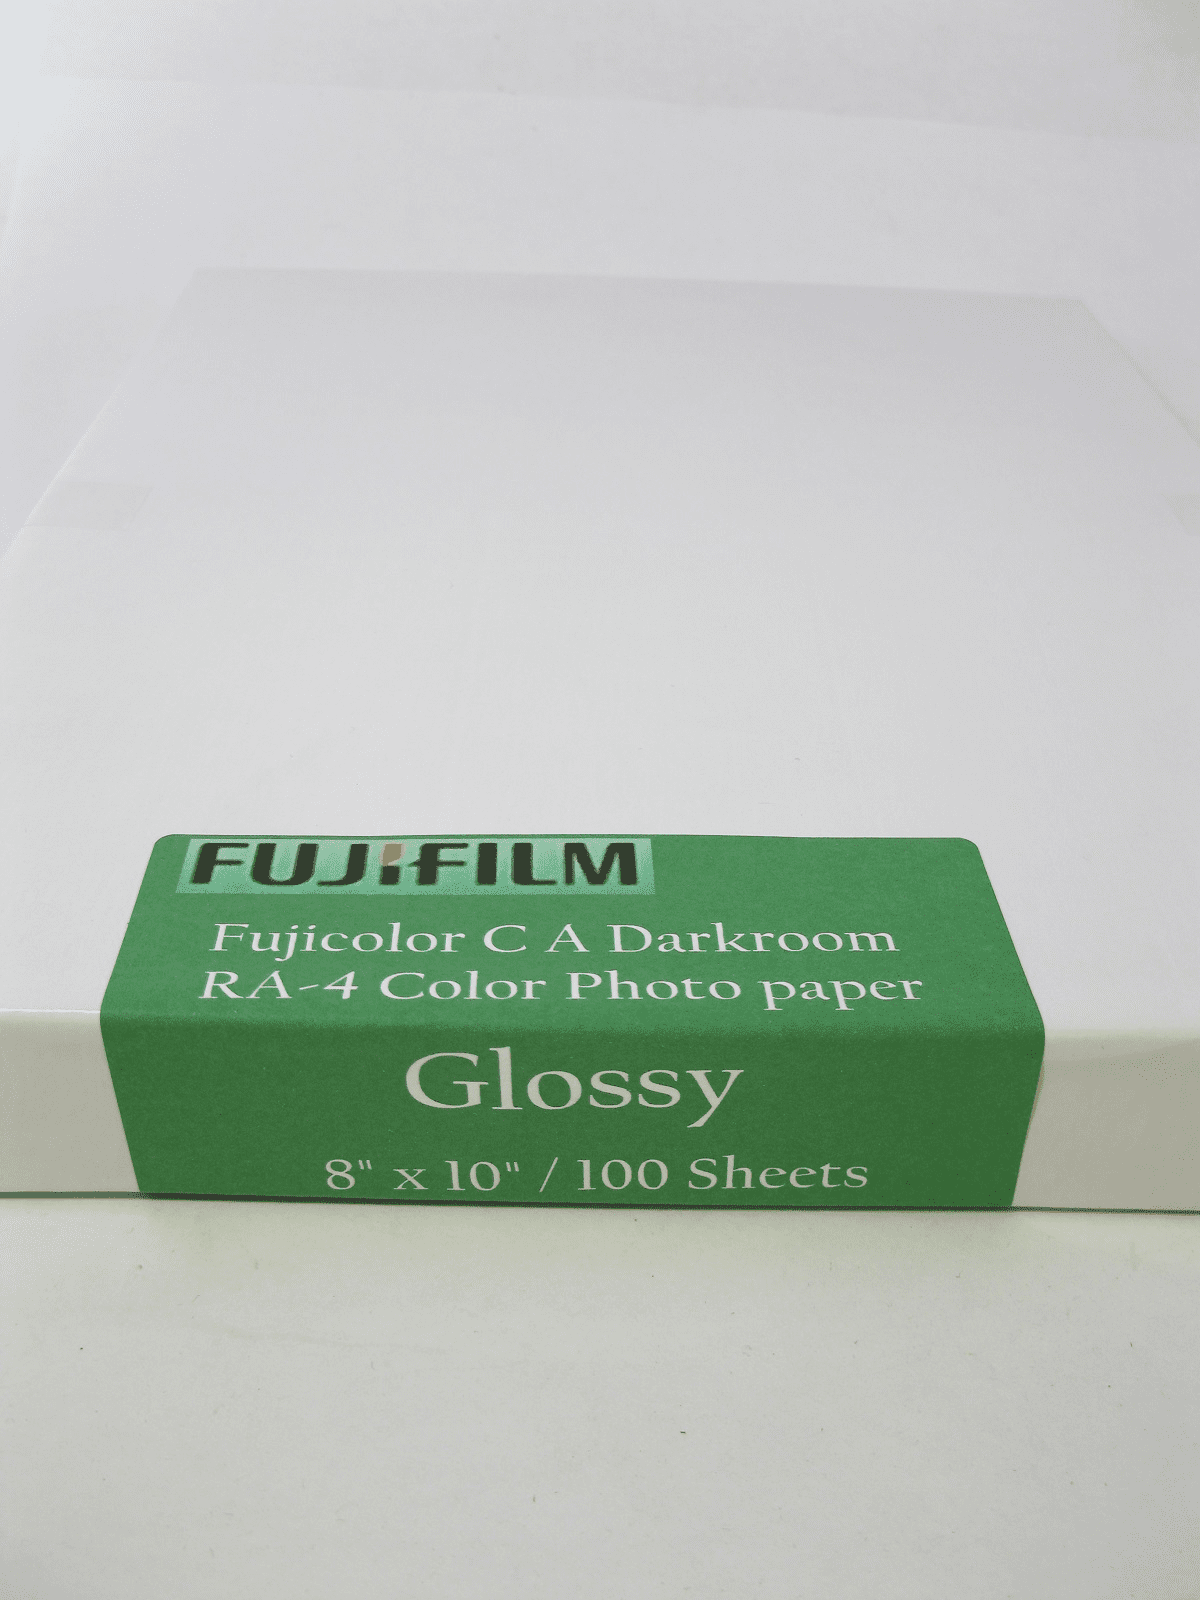 "Fujicolor C A Darkroom  RA-4 Color Photo paper 8"" x 10"" / 100 Sheets Glossy"